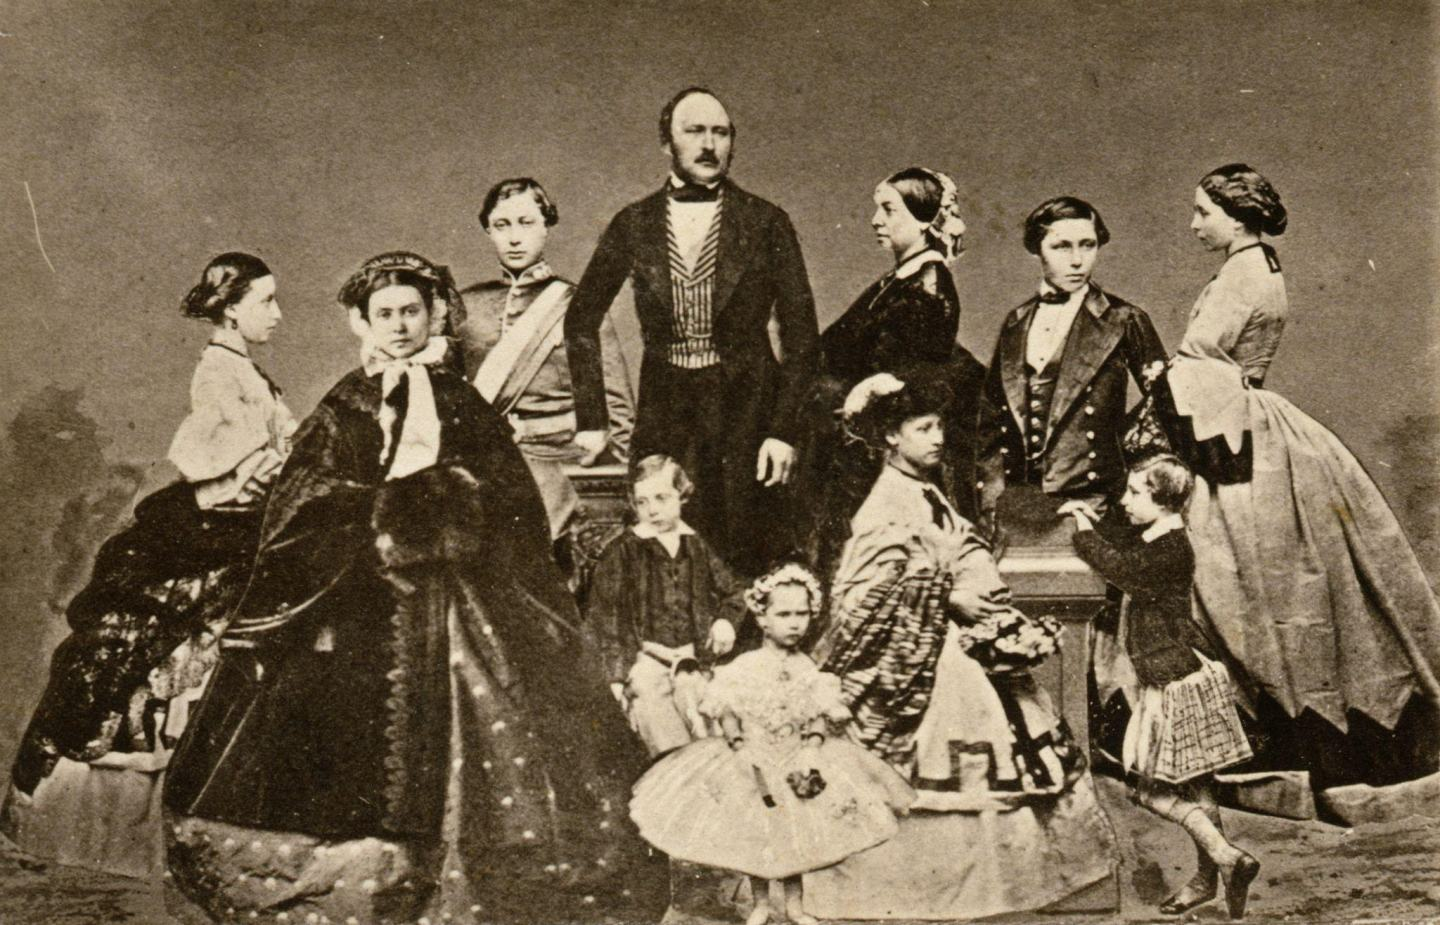 Queen Victoria, Albert and their 9 children.